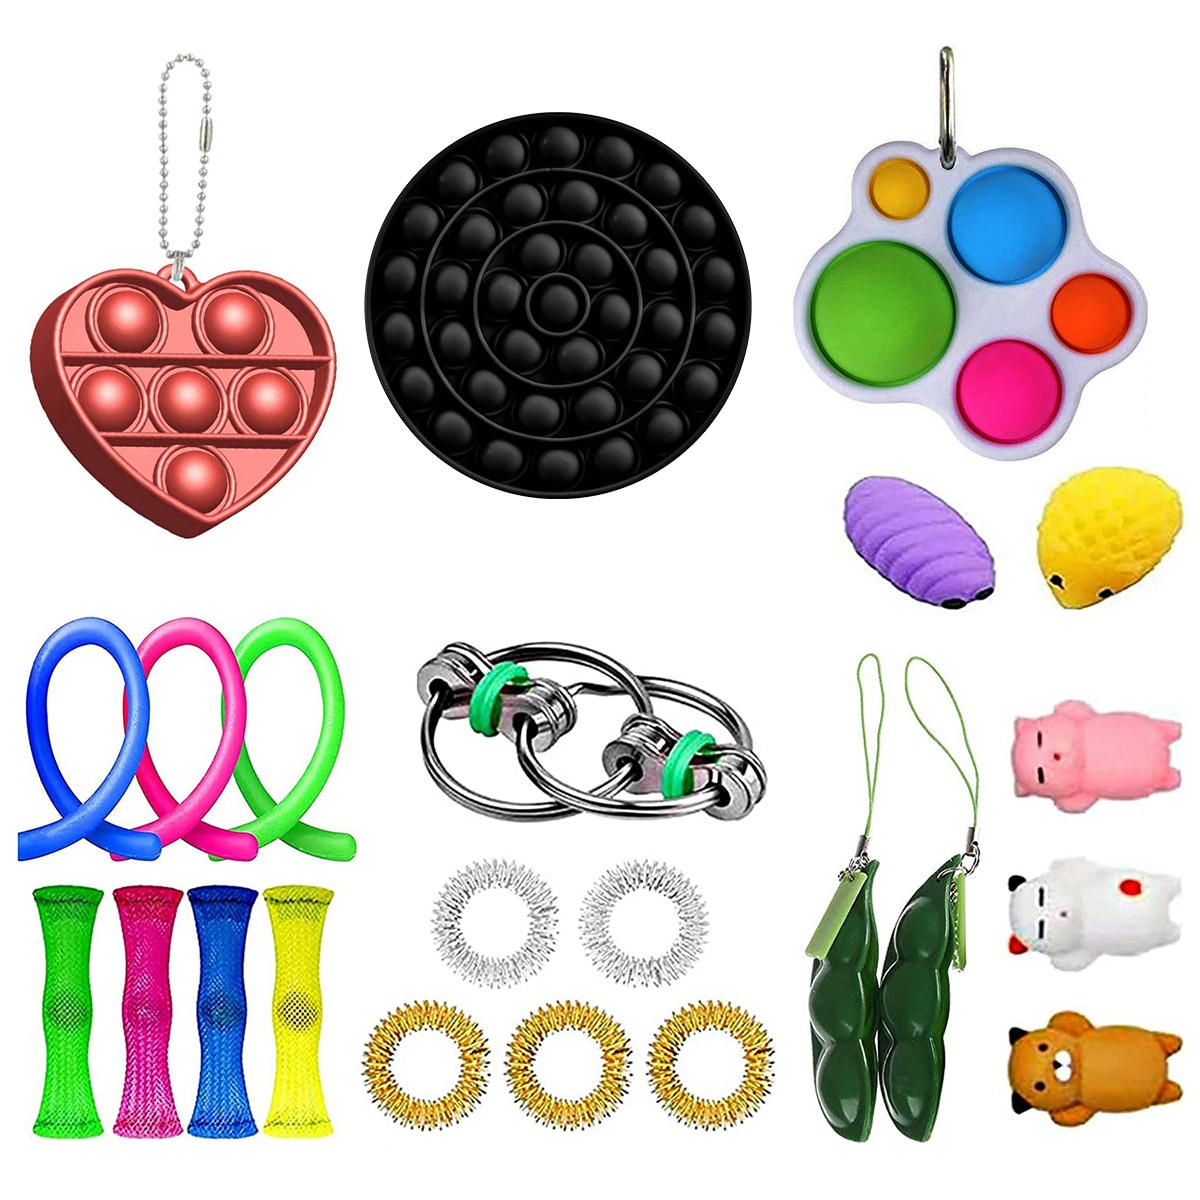 23 Pack Sensory Fidget Toys Stress Relief Toys For Adults Kids Simple Dimple Fidget Toy Extrusion Rebound Toy Soft Toy enlarge